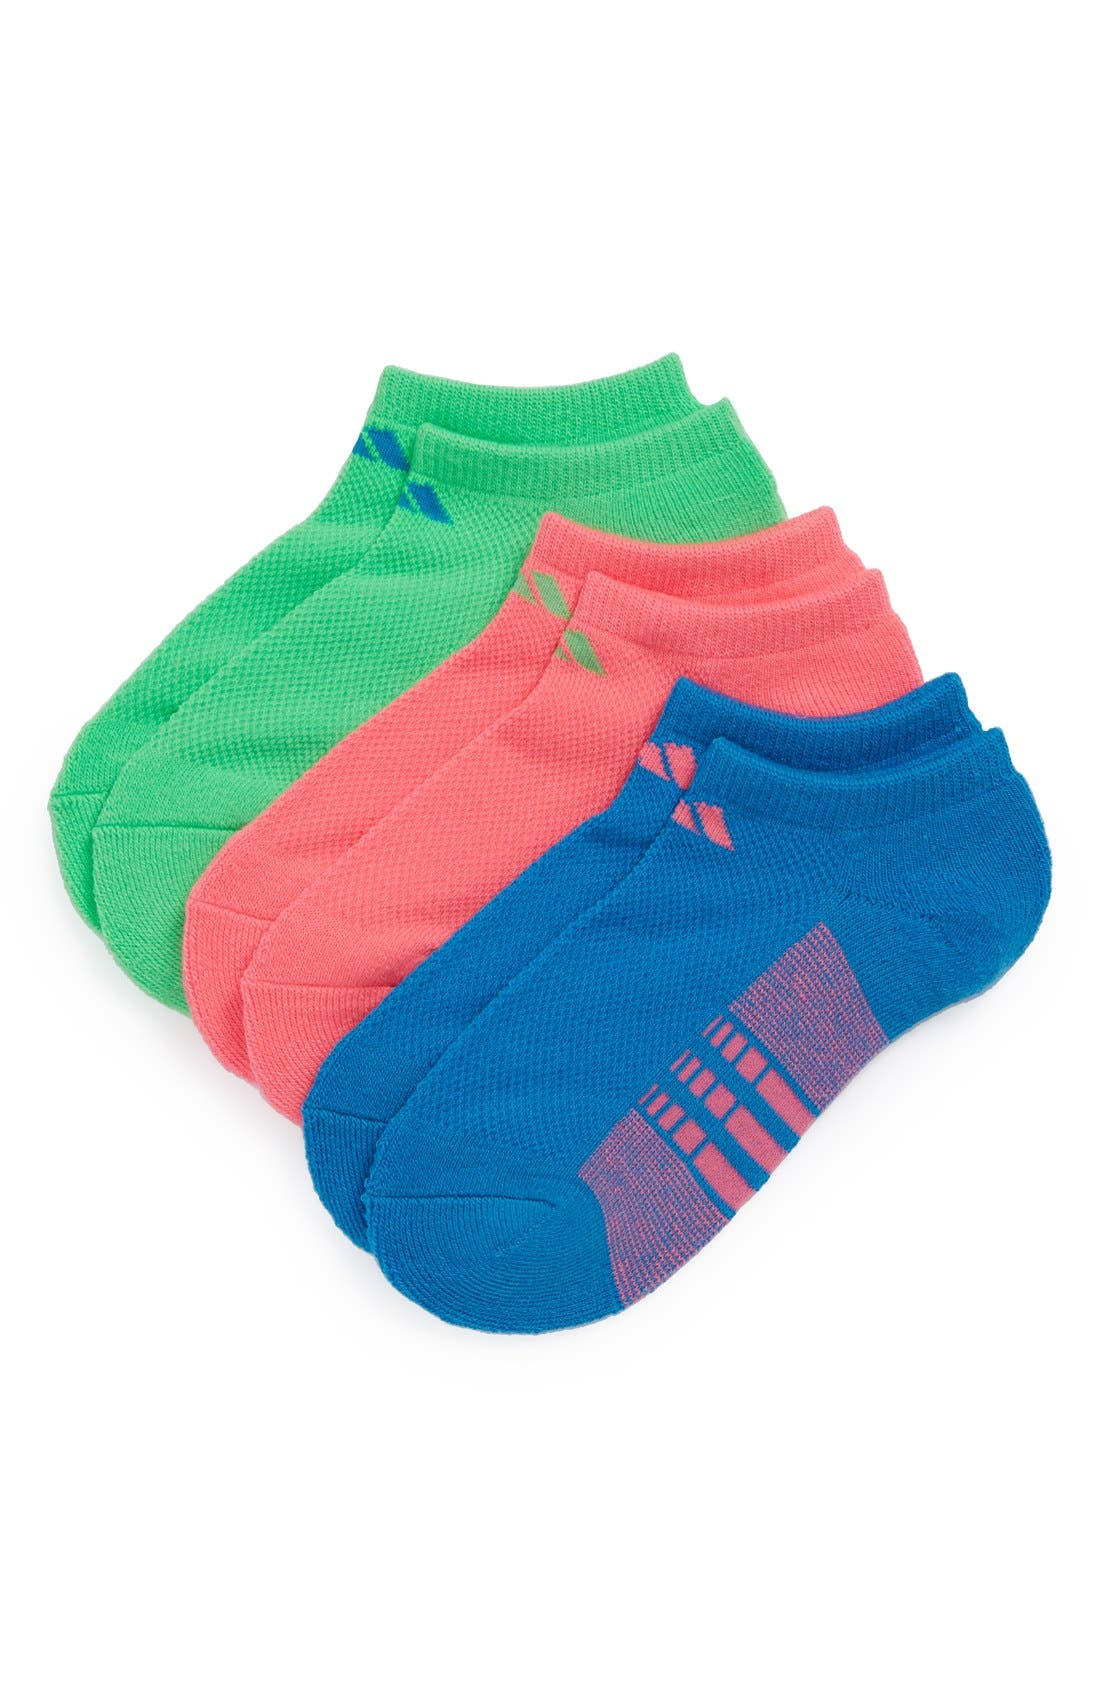 Main Image - adidas Cushioned No-Show Socks (3-Pack) (Little Kid & Big Kid)